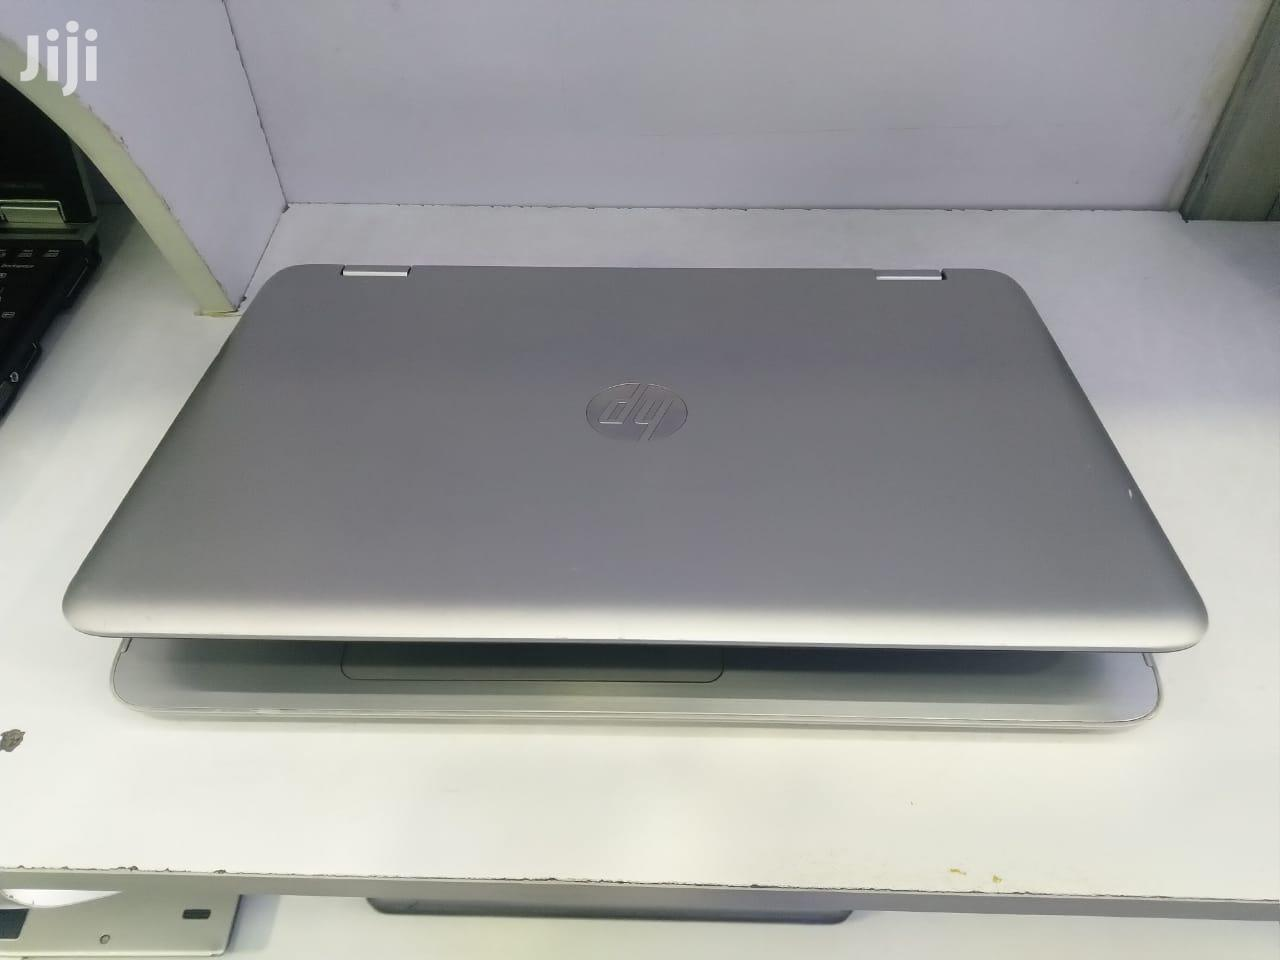 Laptop HP Envy 15 8GB Intel Core I5 HDD 1T | Laptops & Computers for sale in Nakuru East, Nakuru, Kenya